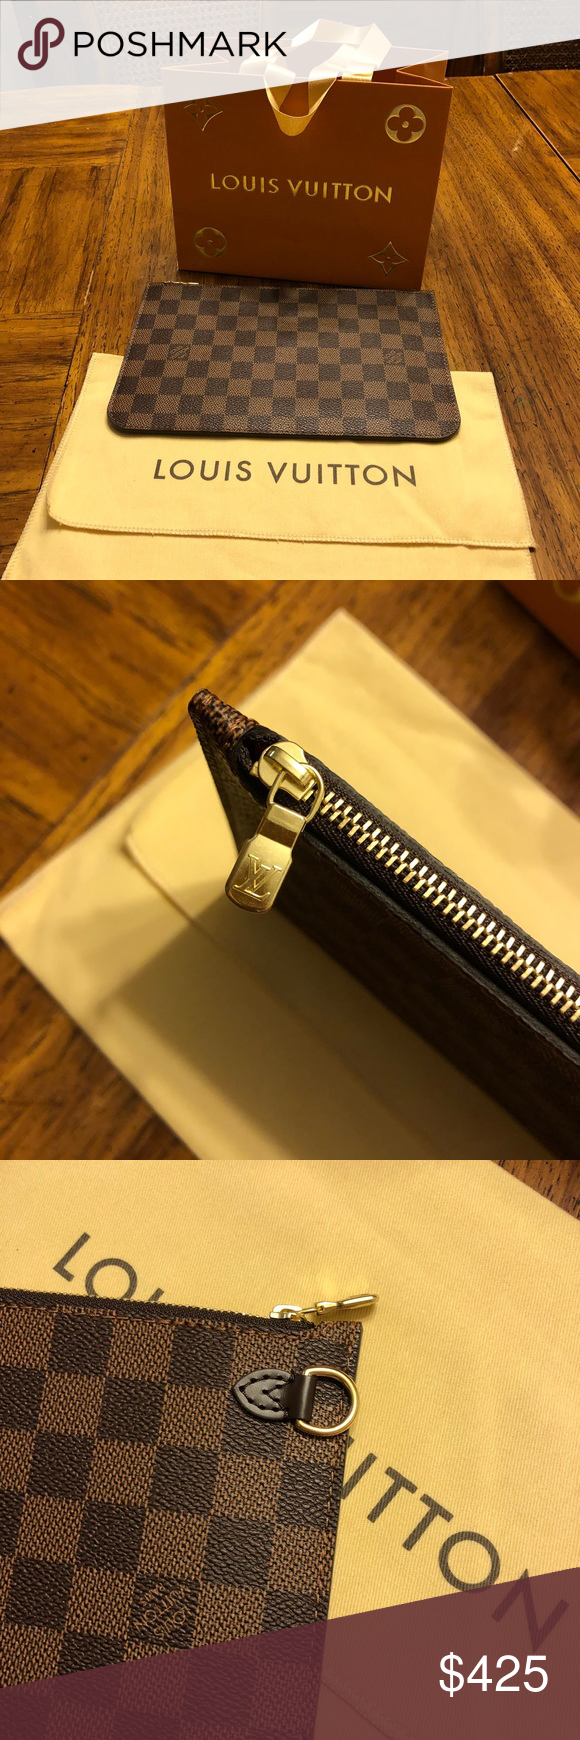 6fba789a676a Louis Vuitton Neverfull Pouch Wristlet Five days old. Authentic. I  purchased as a repair/replacement item for my Neverfull GM bag Includes  dustbag and cute ...